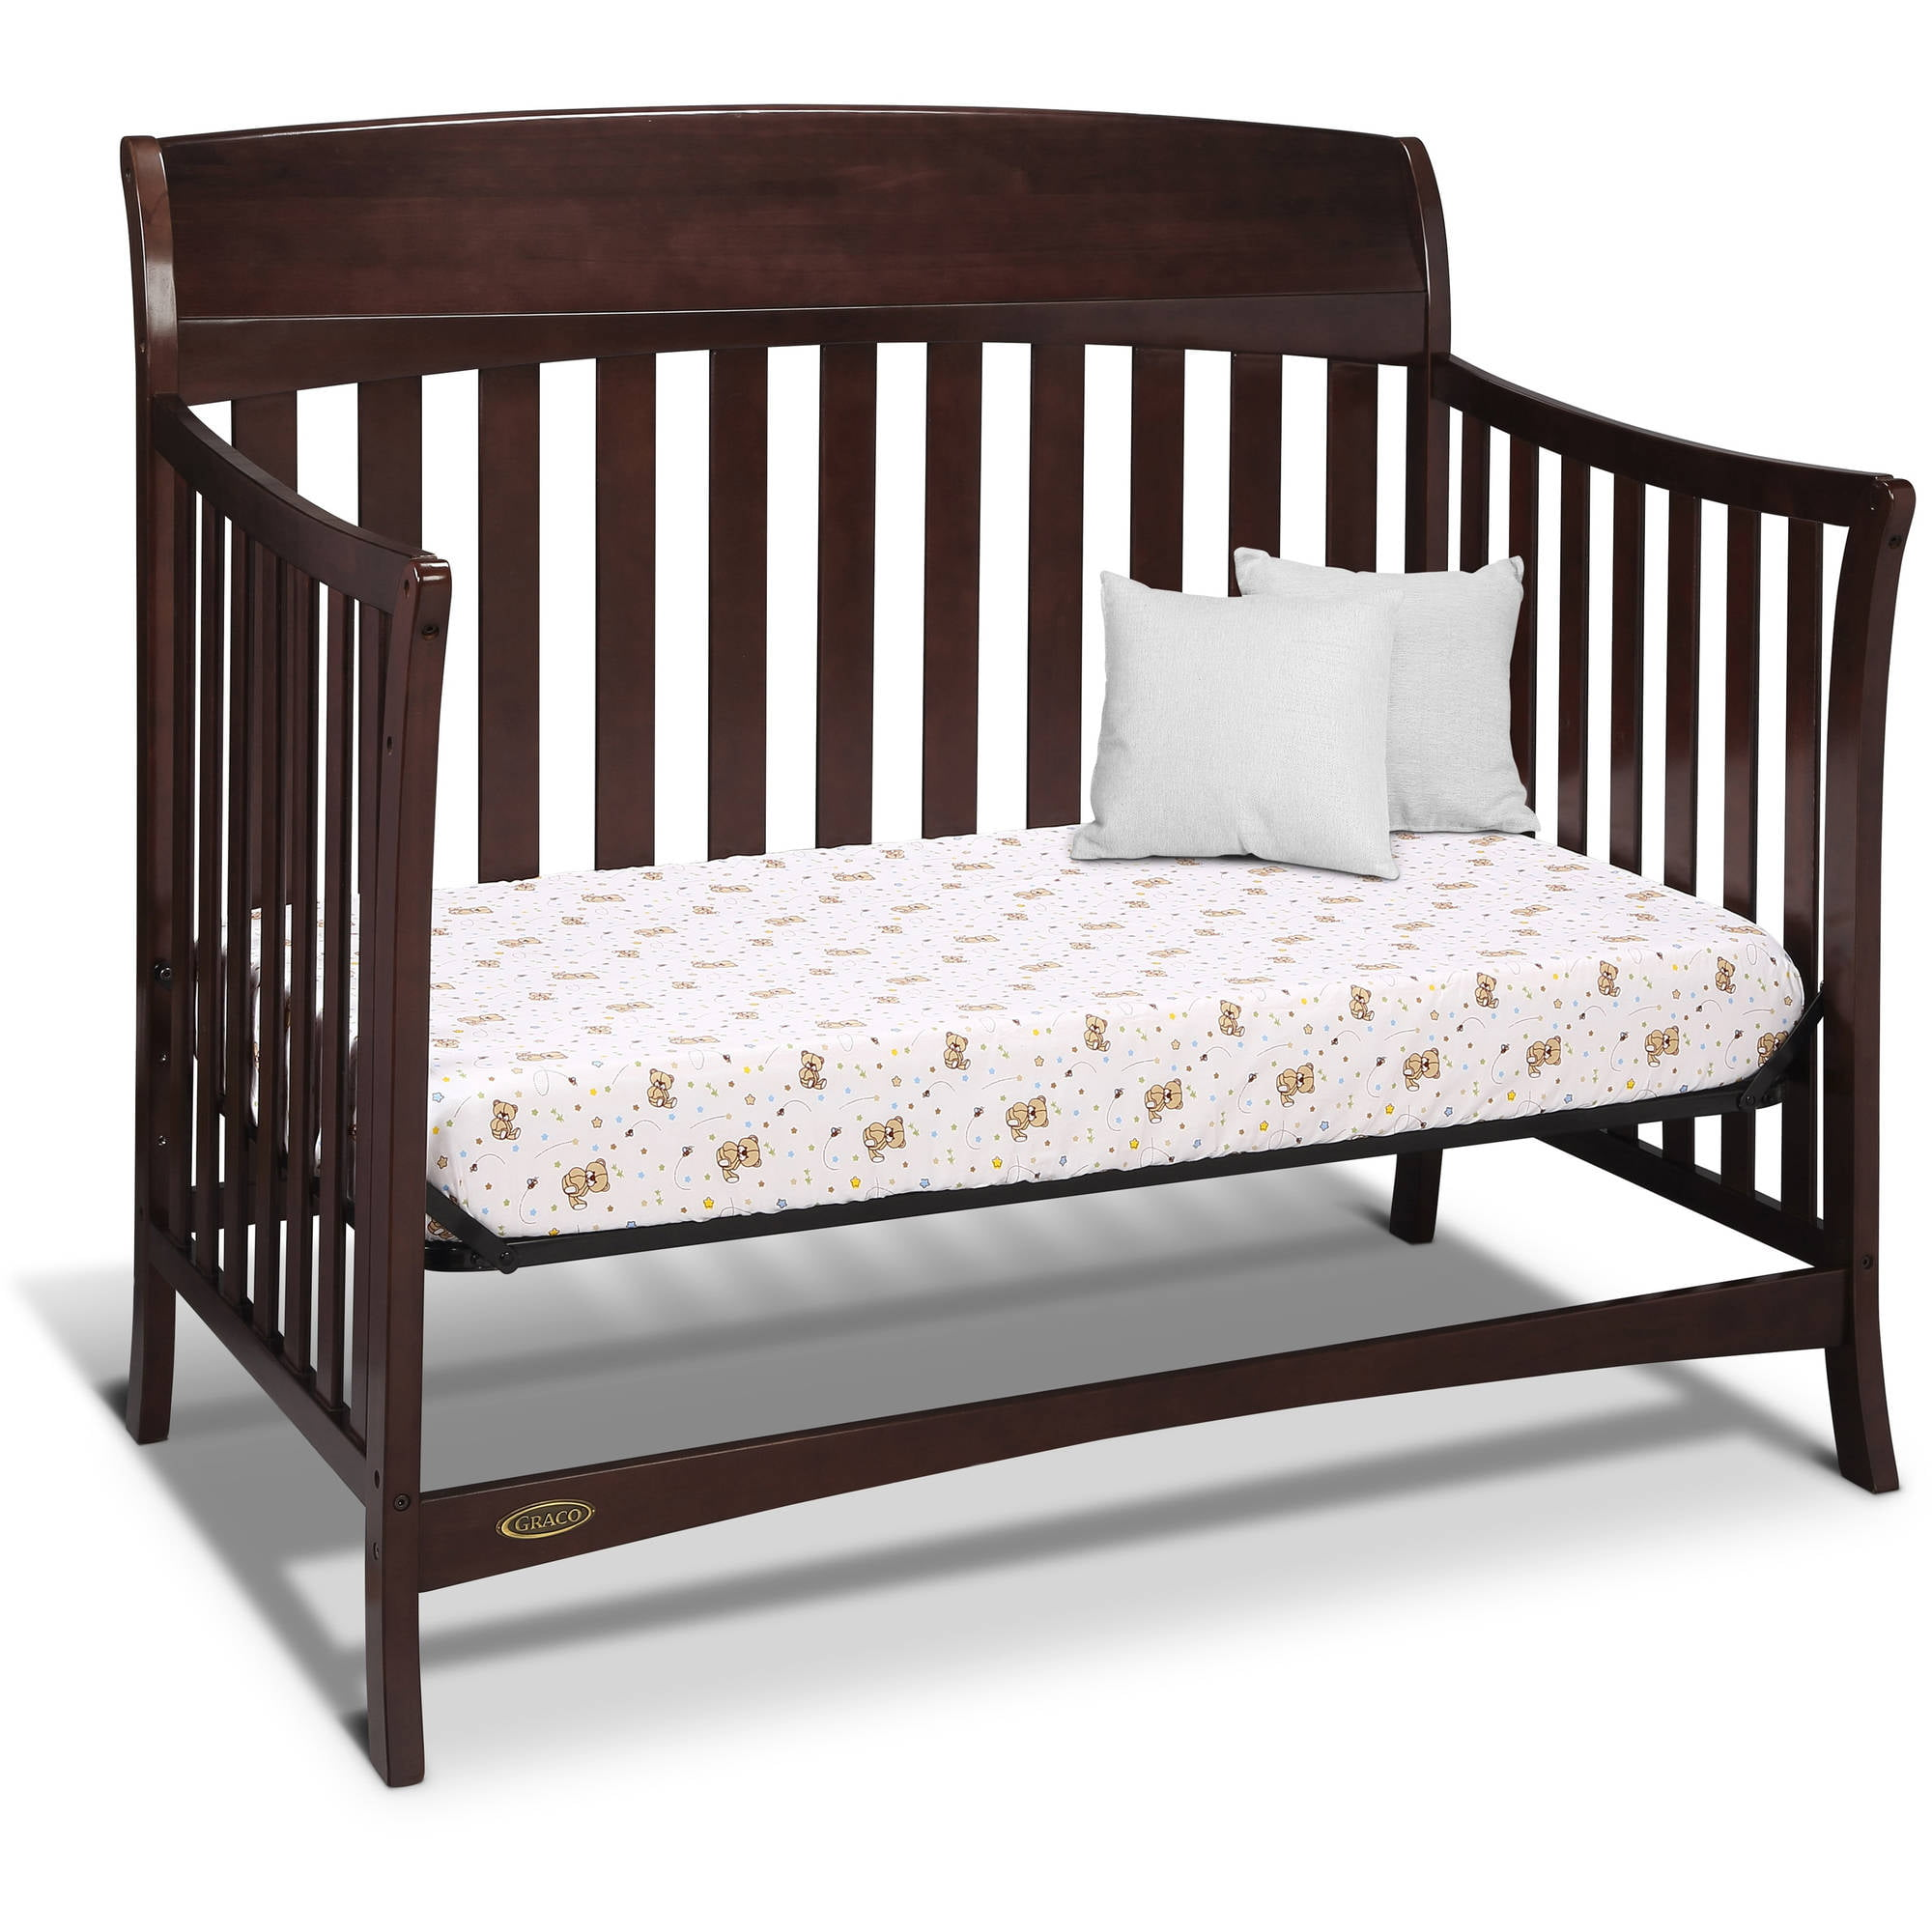 How To Convert Graco Crib To Toddler Bed